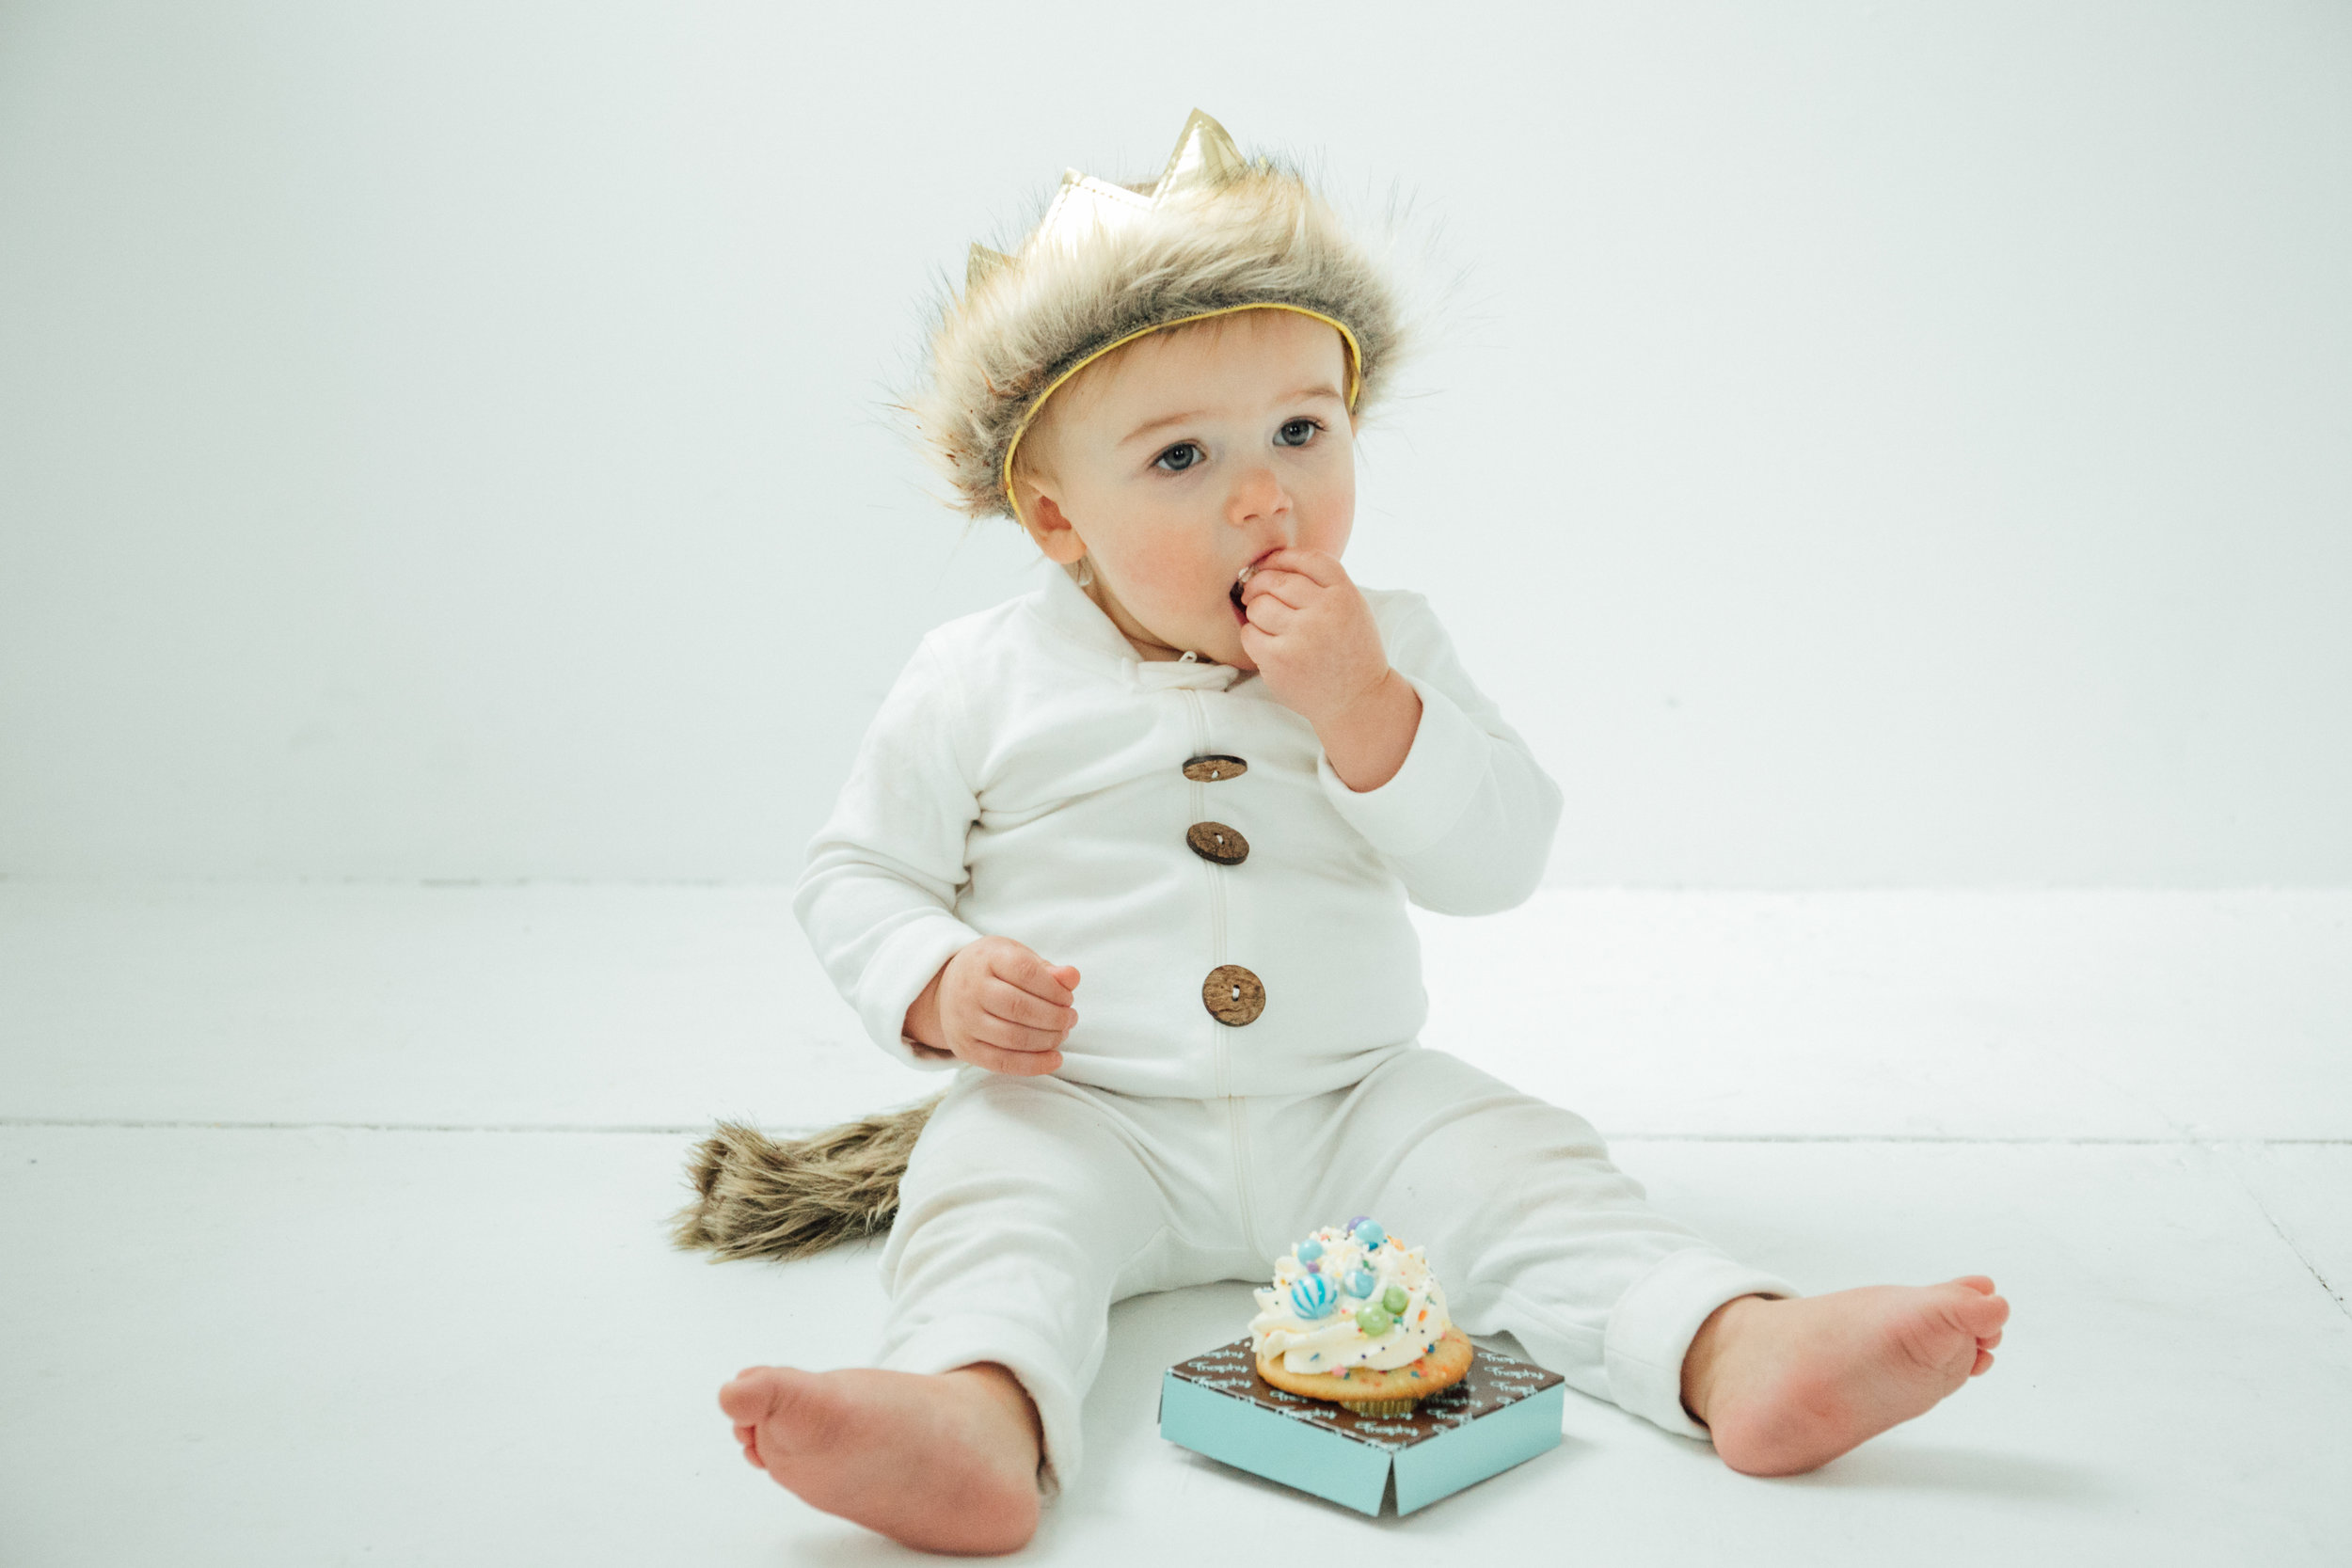 Kennan was Max from Where The Wild Things Are book and he loves his cakes and cupcakes